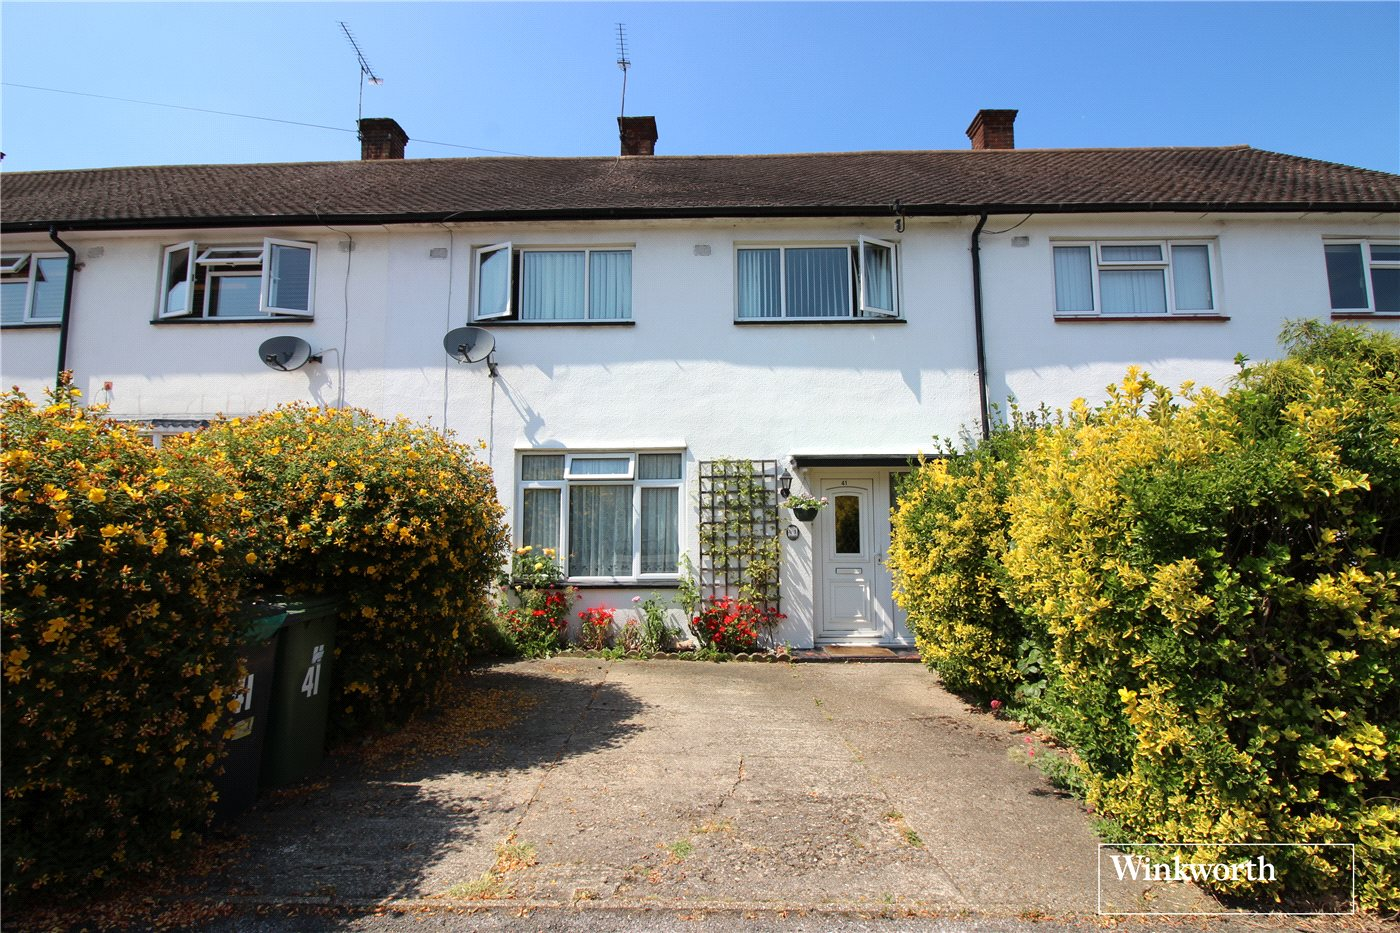 3 Bedrooms Terraced House for sale in Ashley Drive, Borehamwood, Hertfordshire, WD6